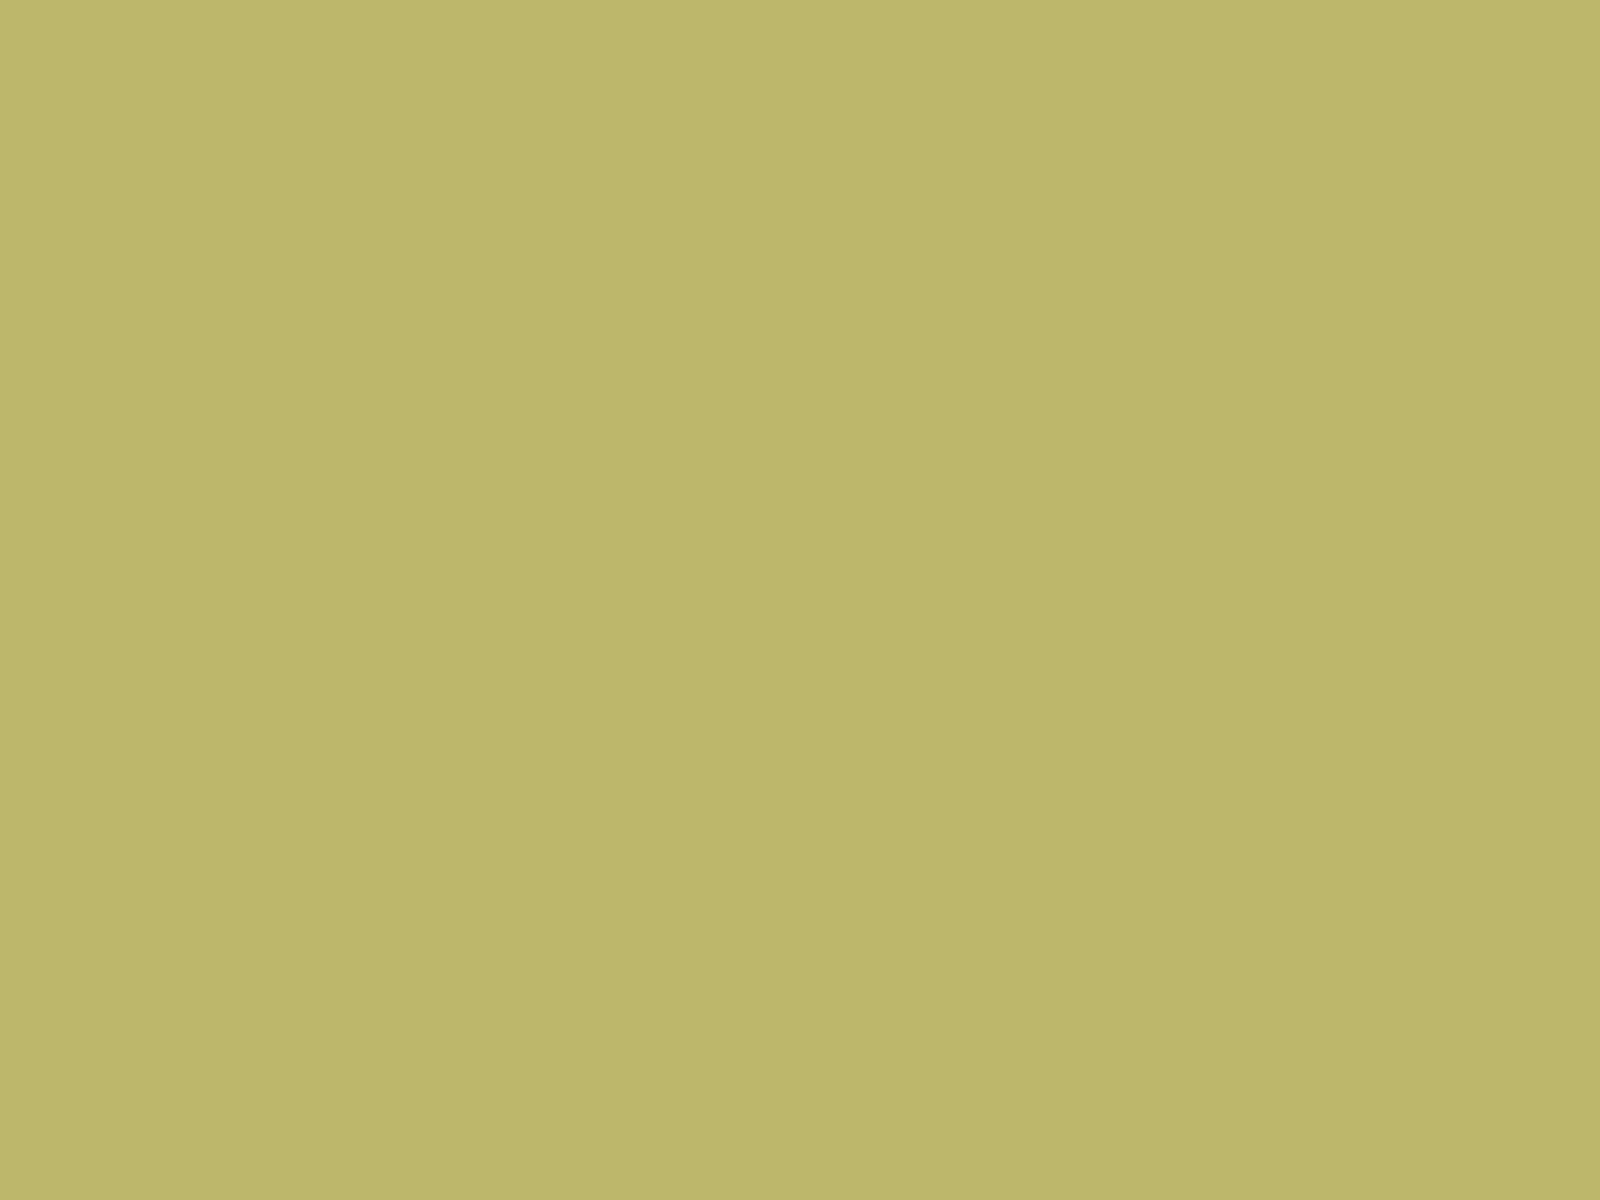 1600x1200 Dark Khaki Solid Color Background